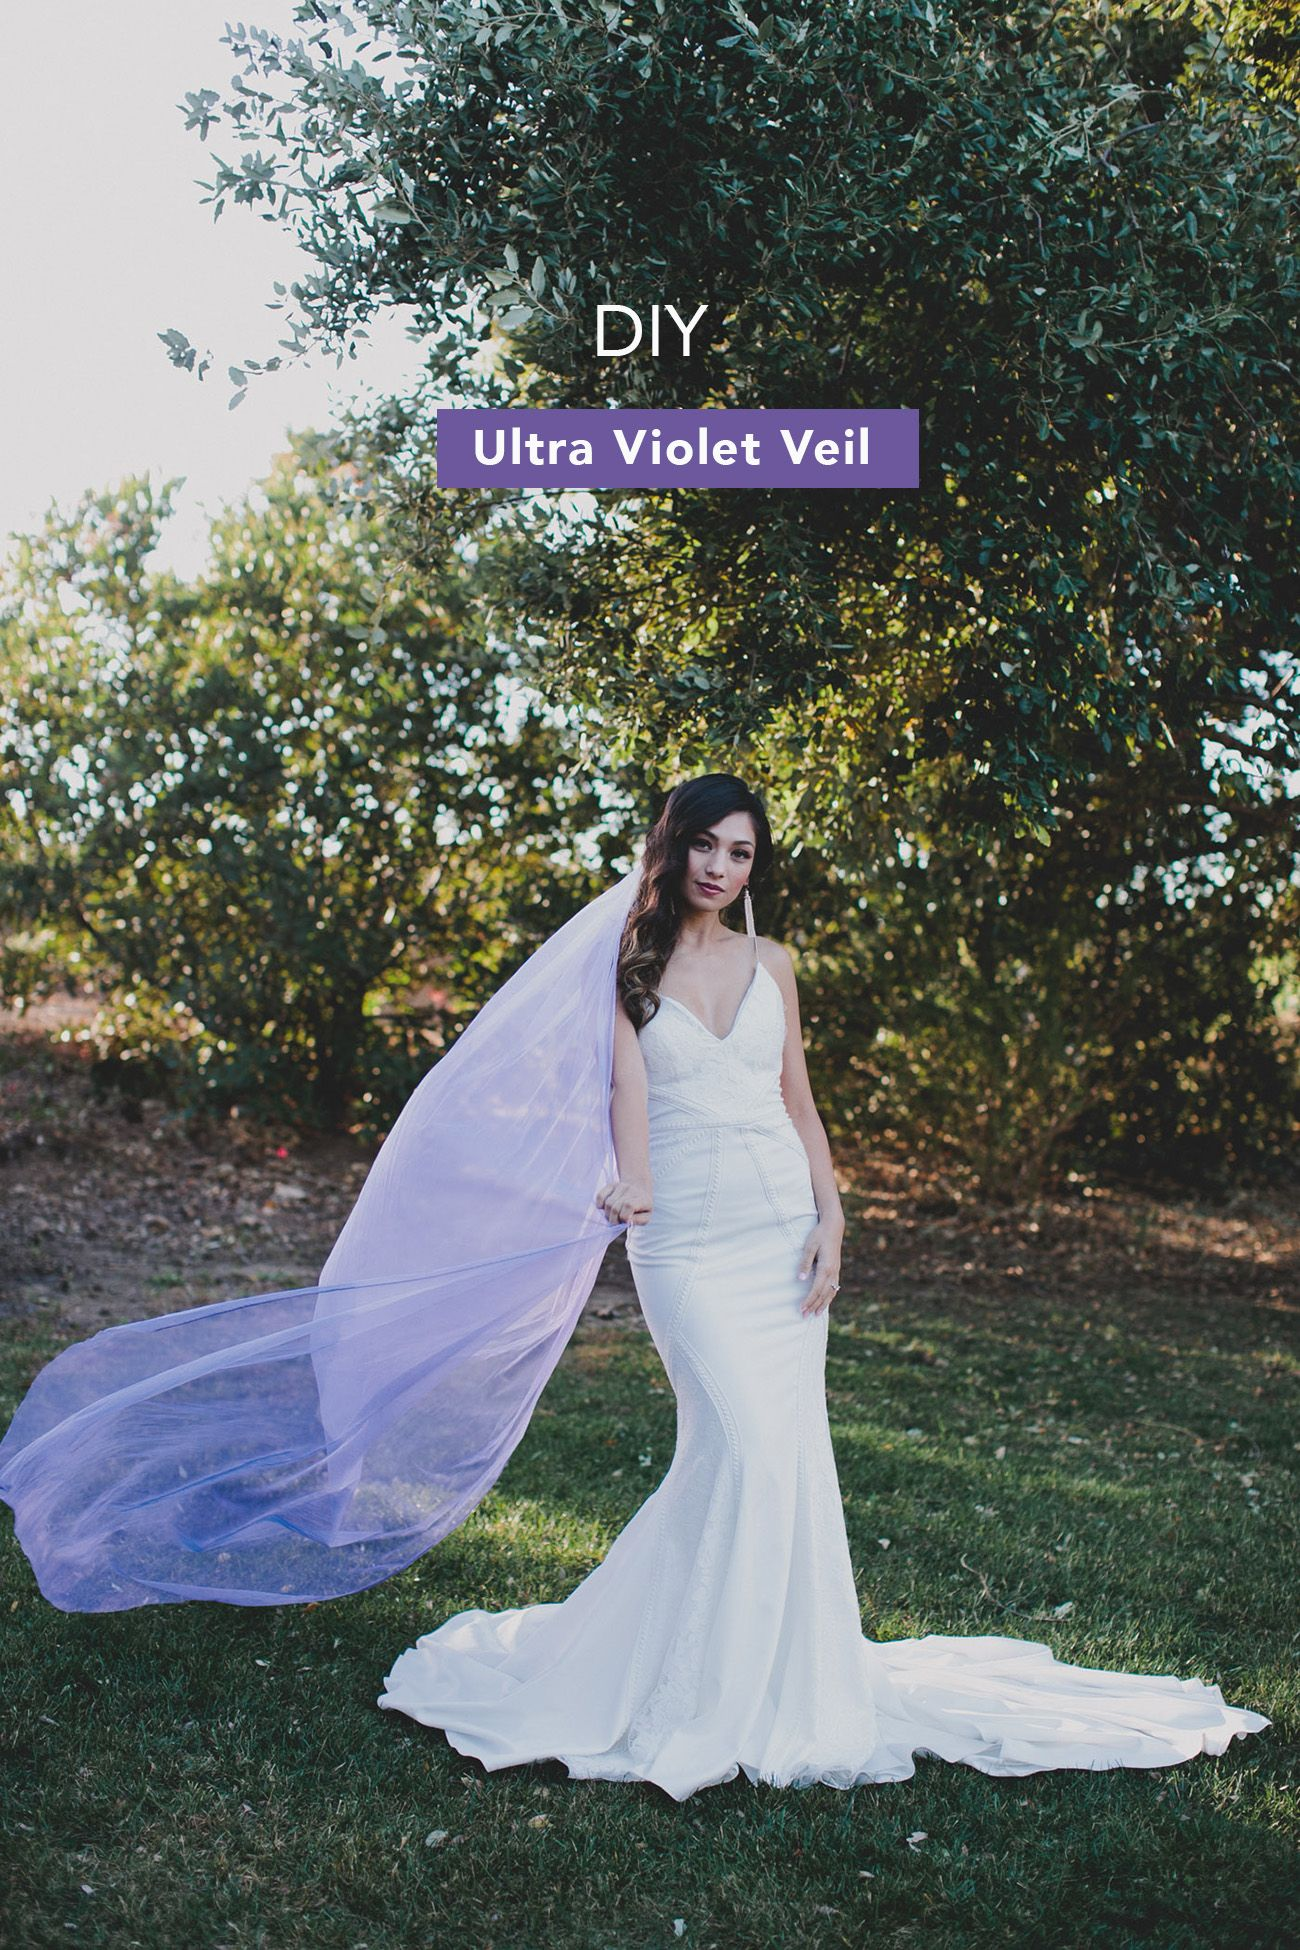 Diy Your Own Ultra Violet Veil Wedding Dress Styles Wedding